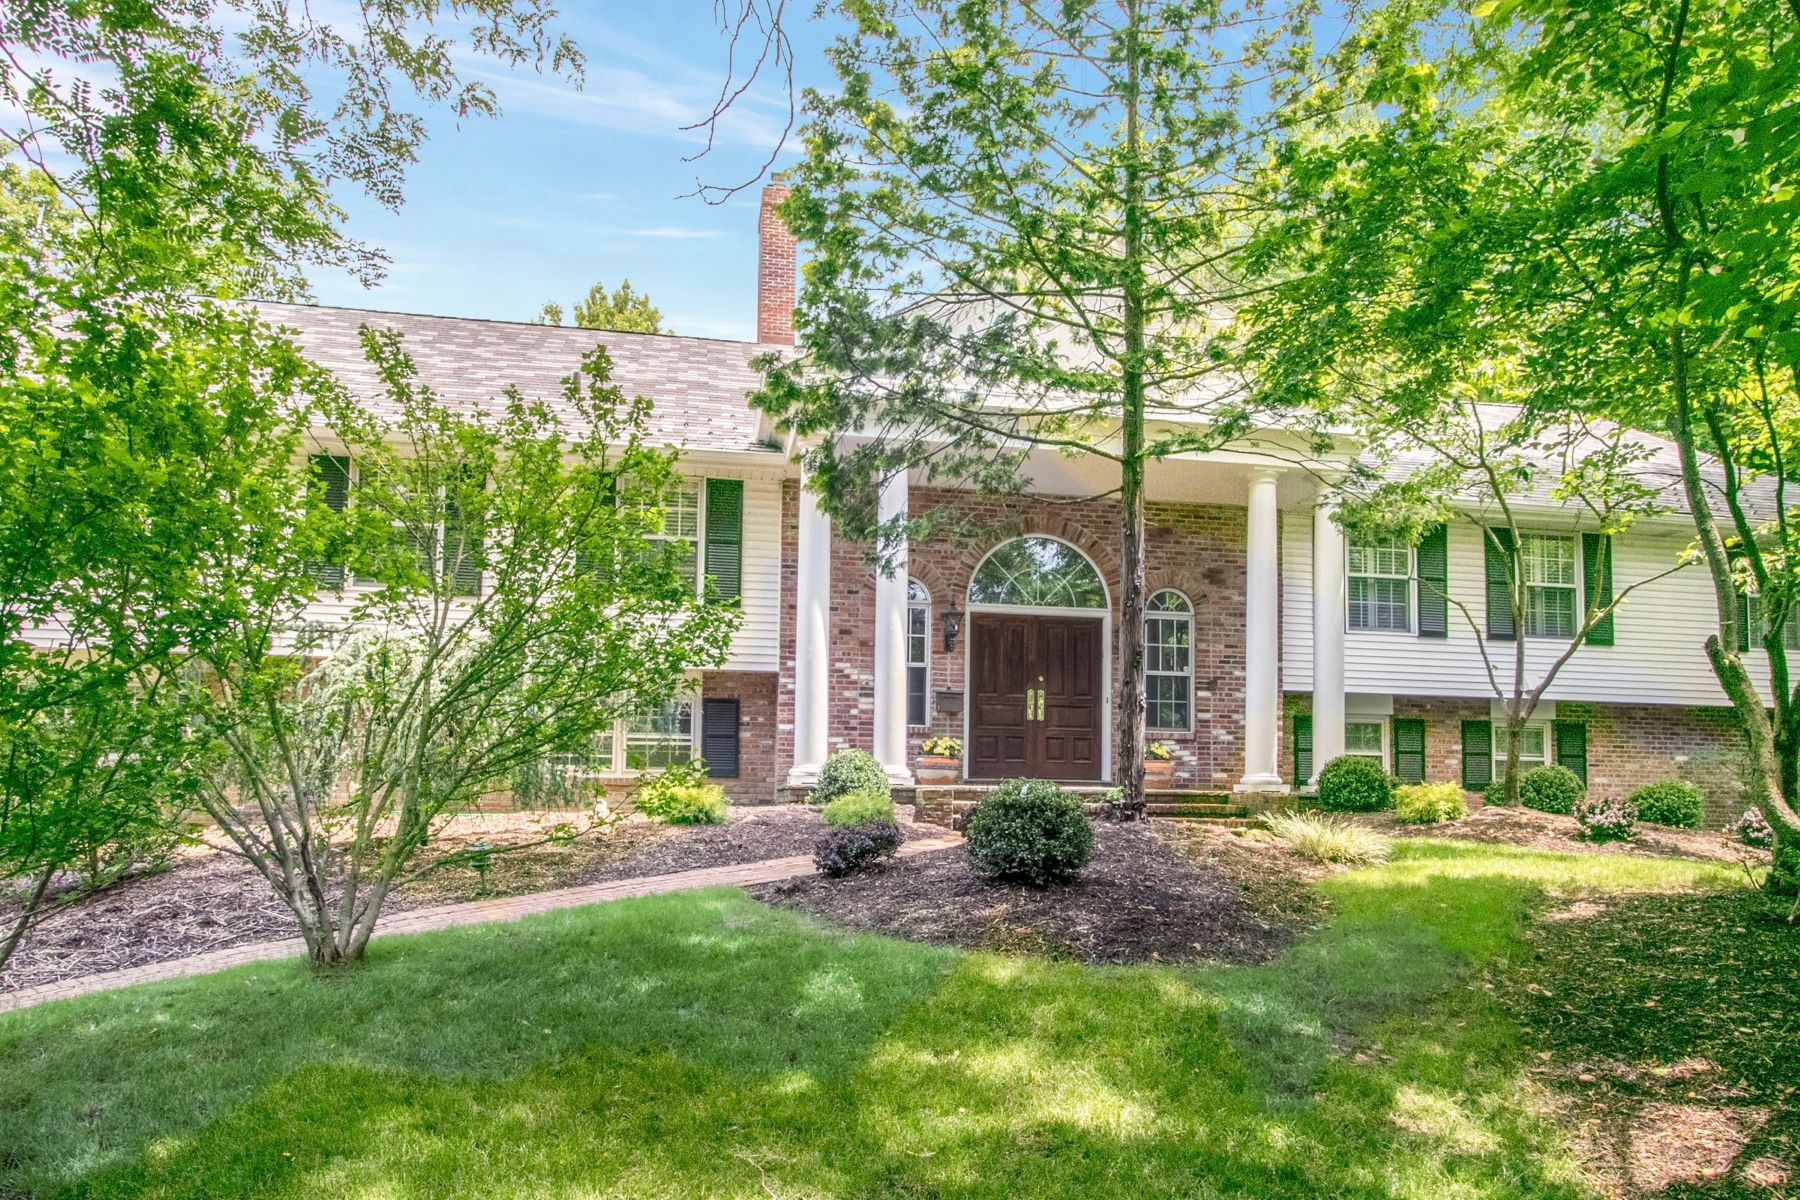 Single Family Home for Sale at Prestigious Tenafly 30 Lancaster Rd, Tenafly, New Jersey 07670 United States